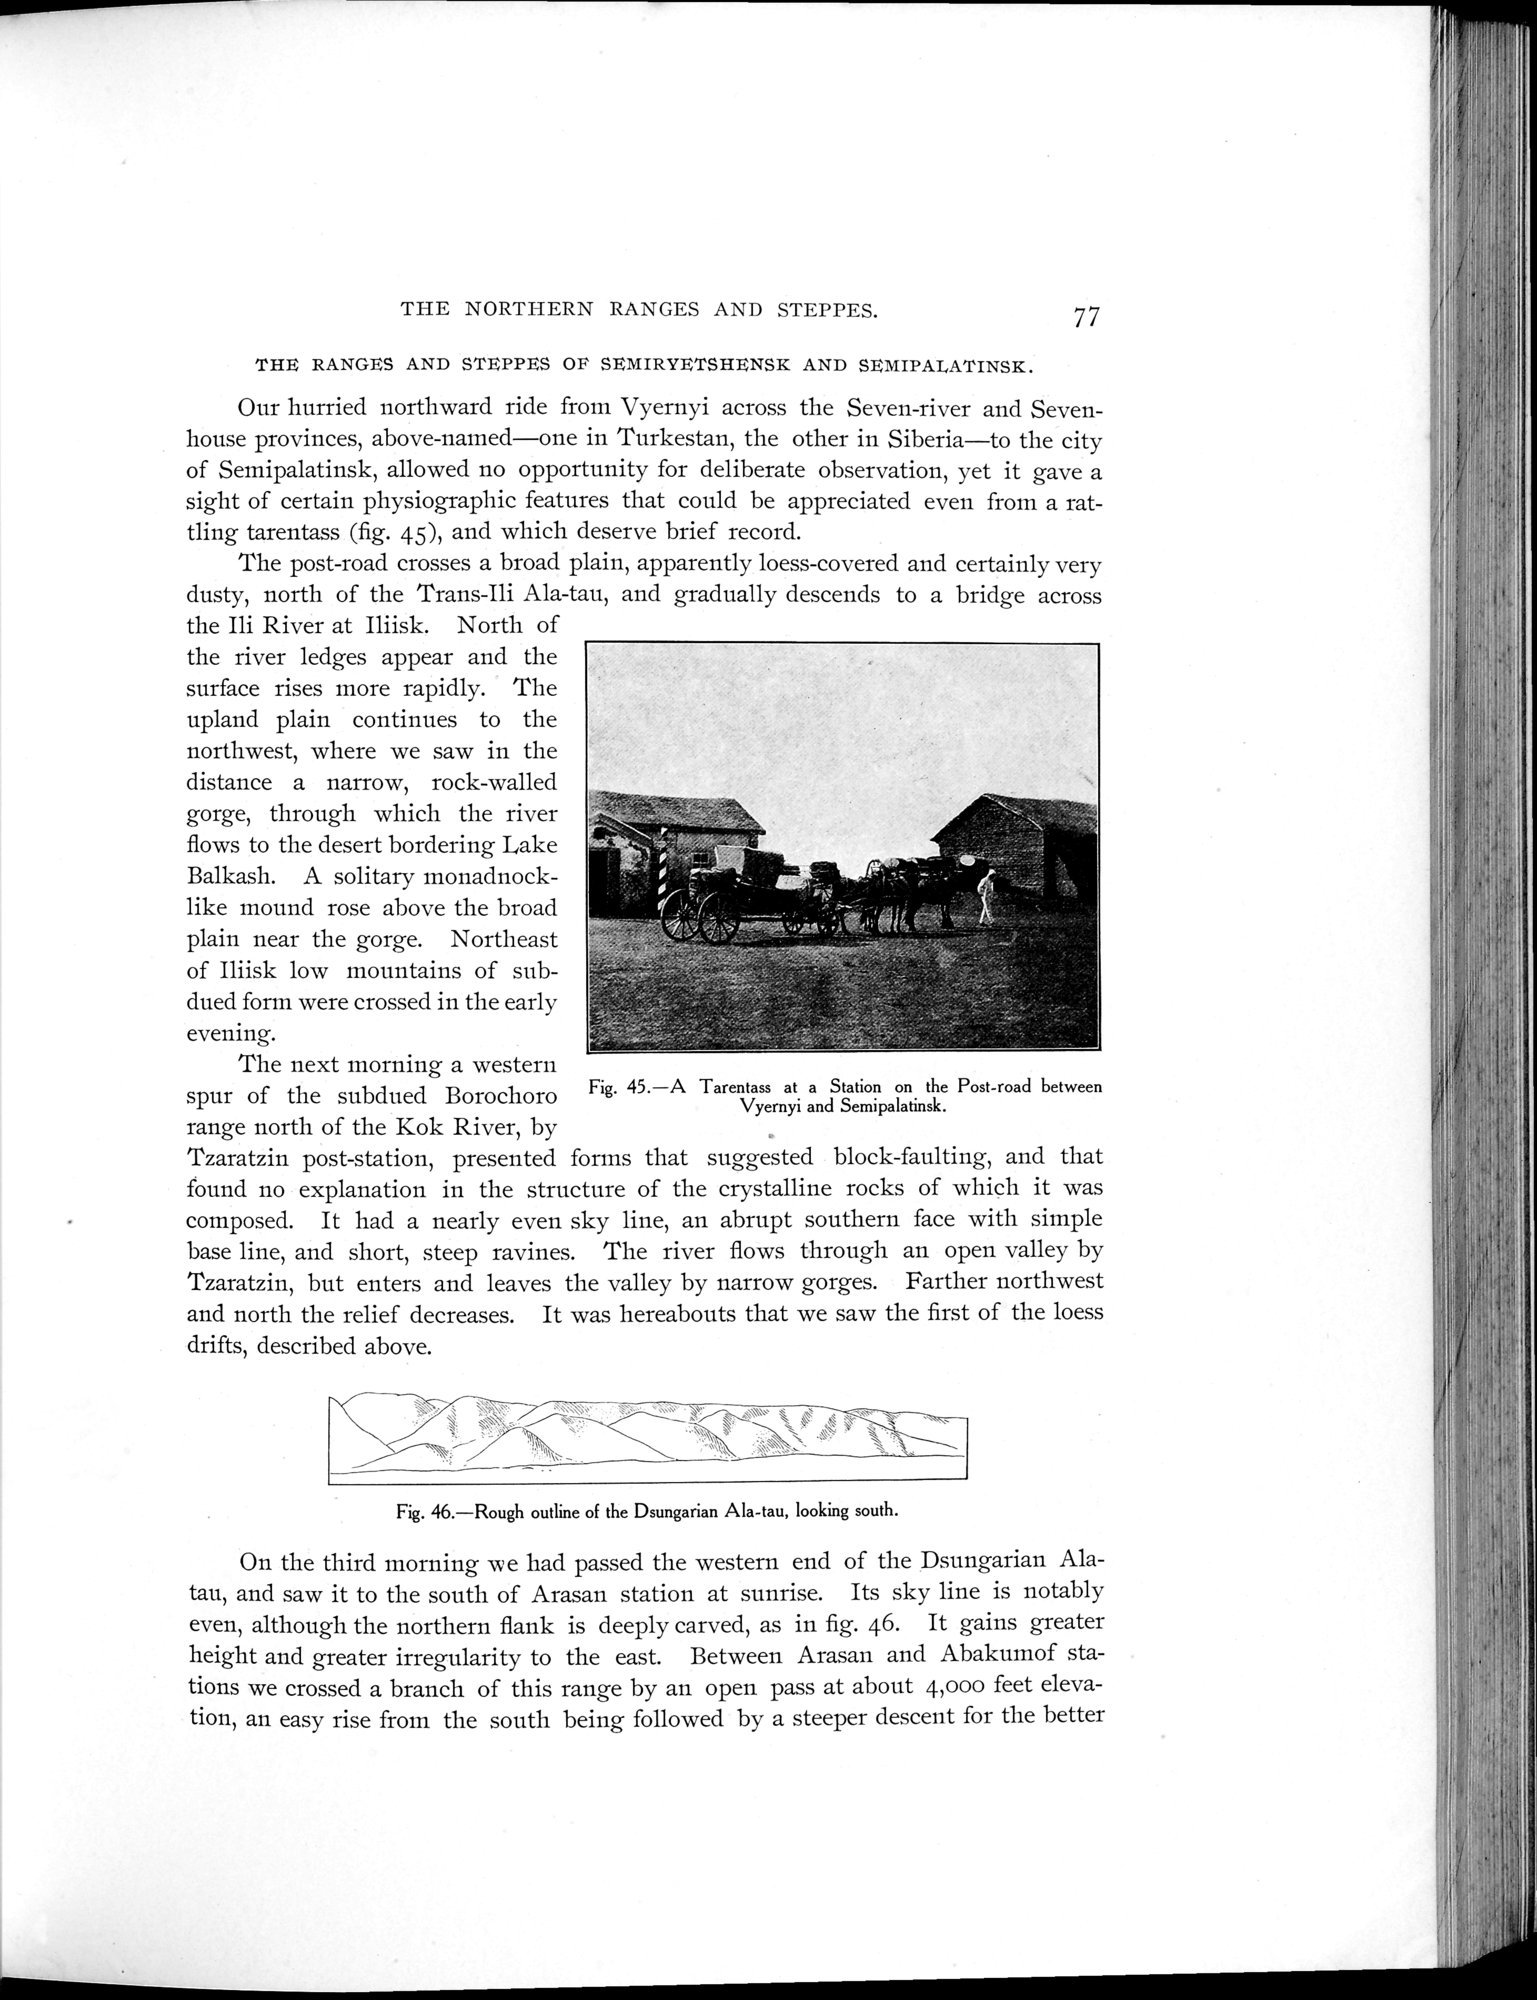 Explorations in Turkestan 1903 : vol.1 / Page 101 (Grayscale High Resolution Image)